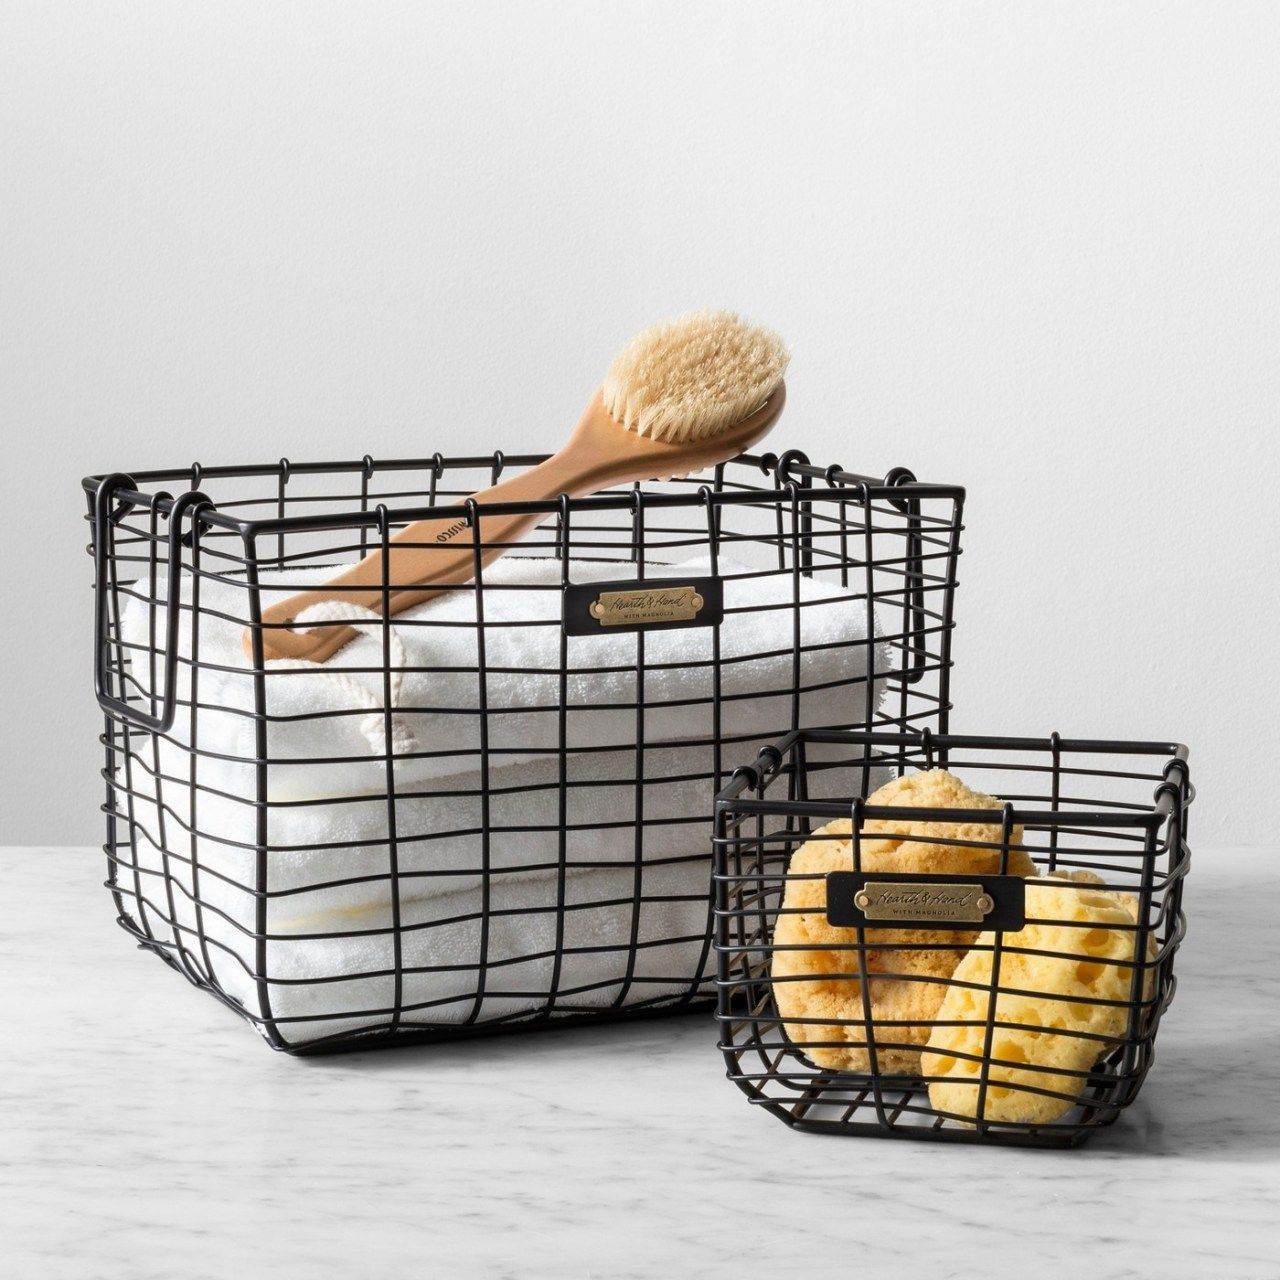 Baskets as decor and organization tools